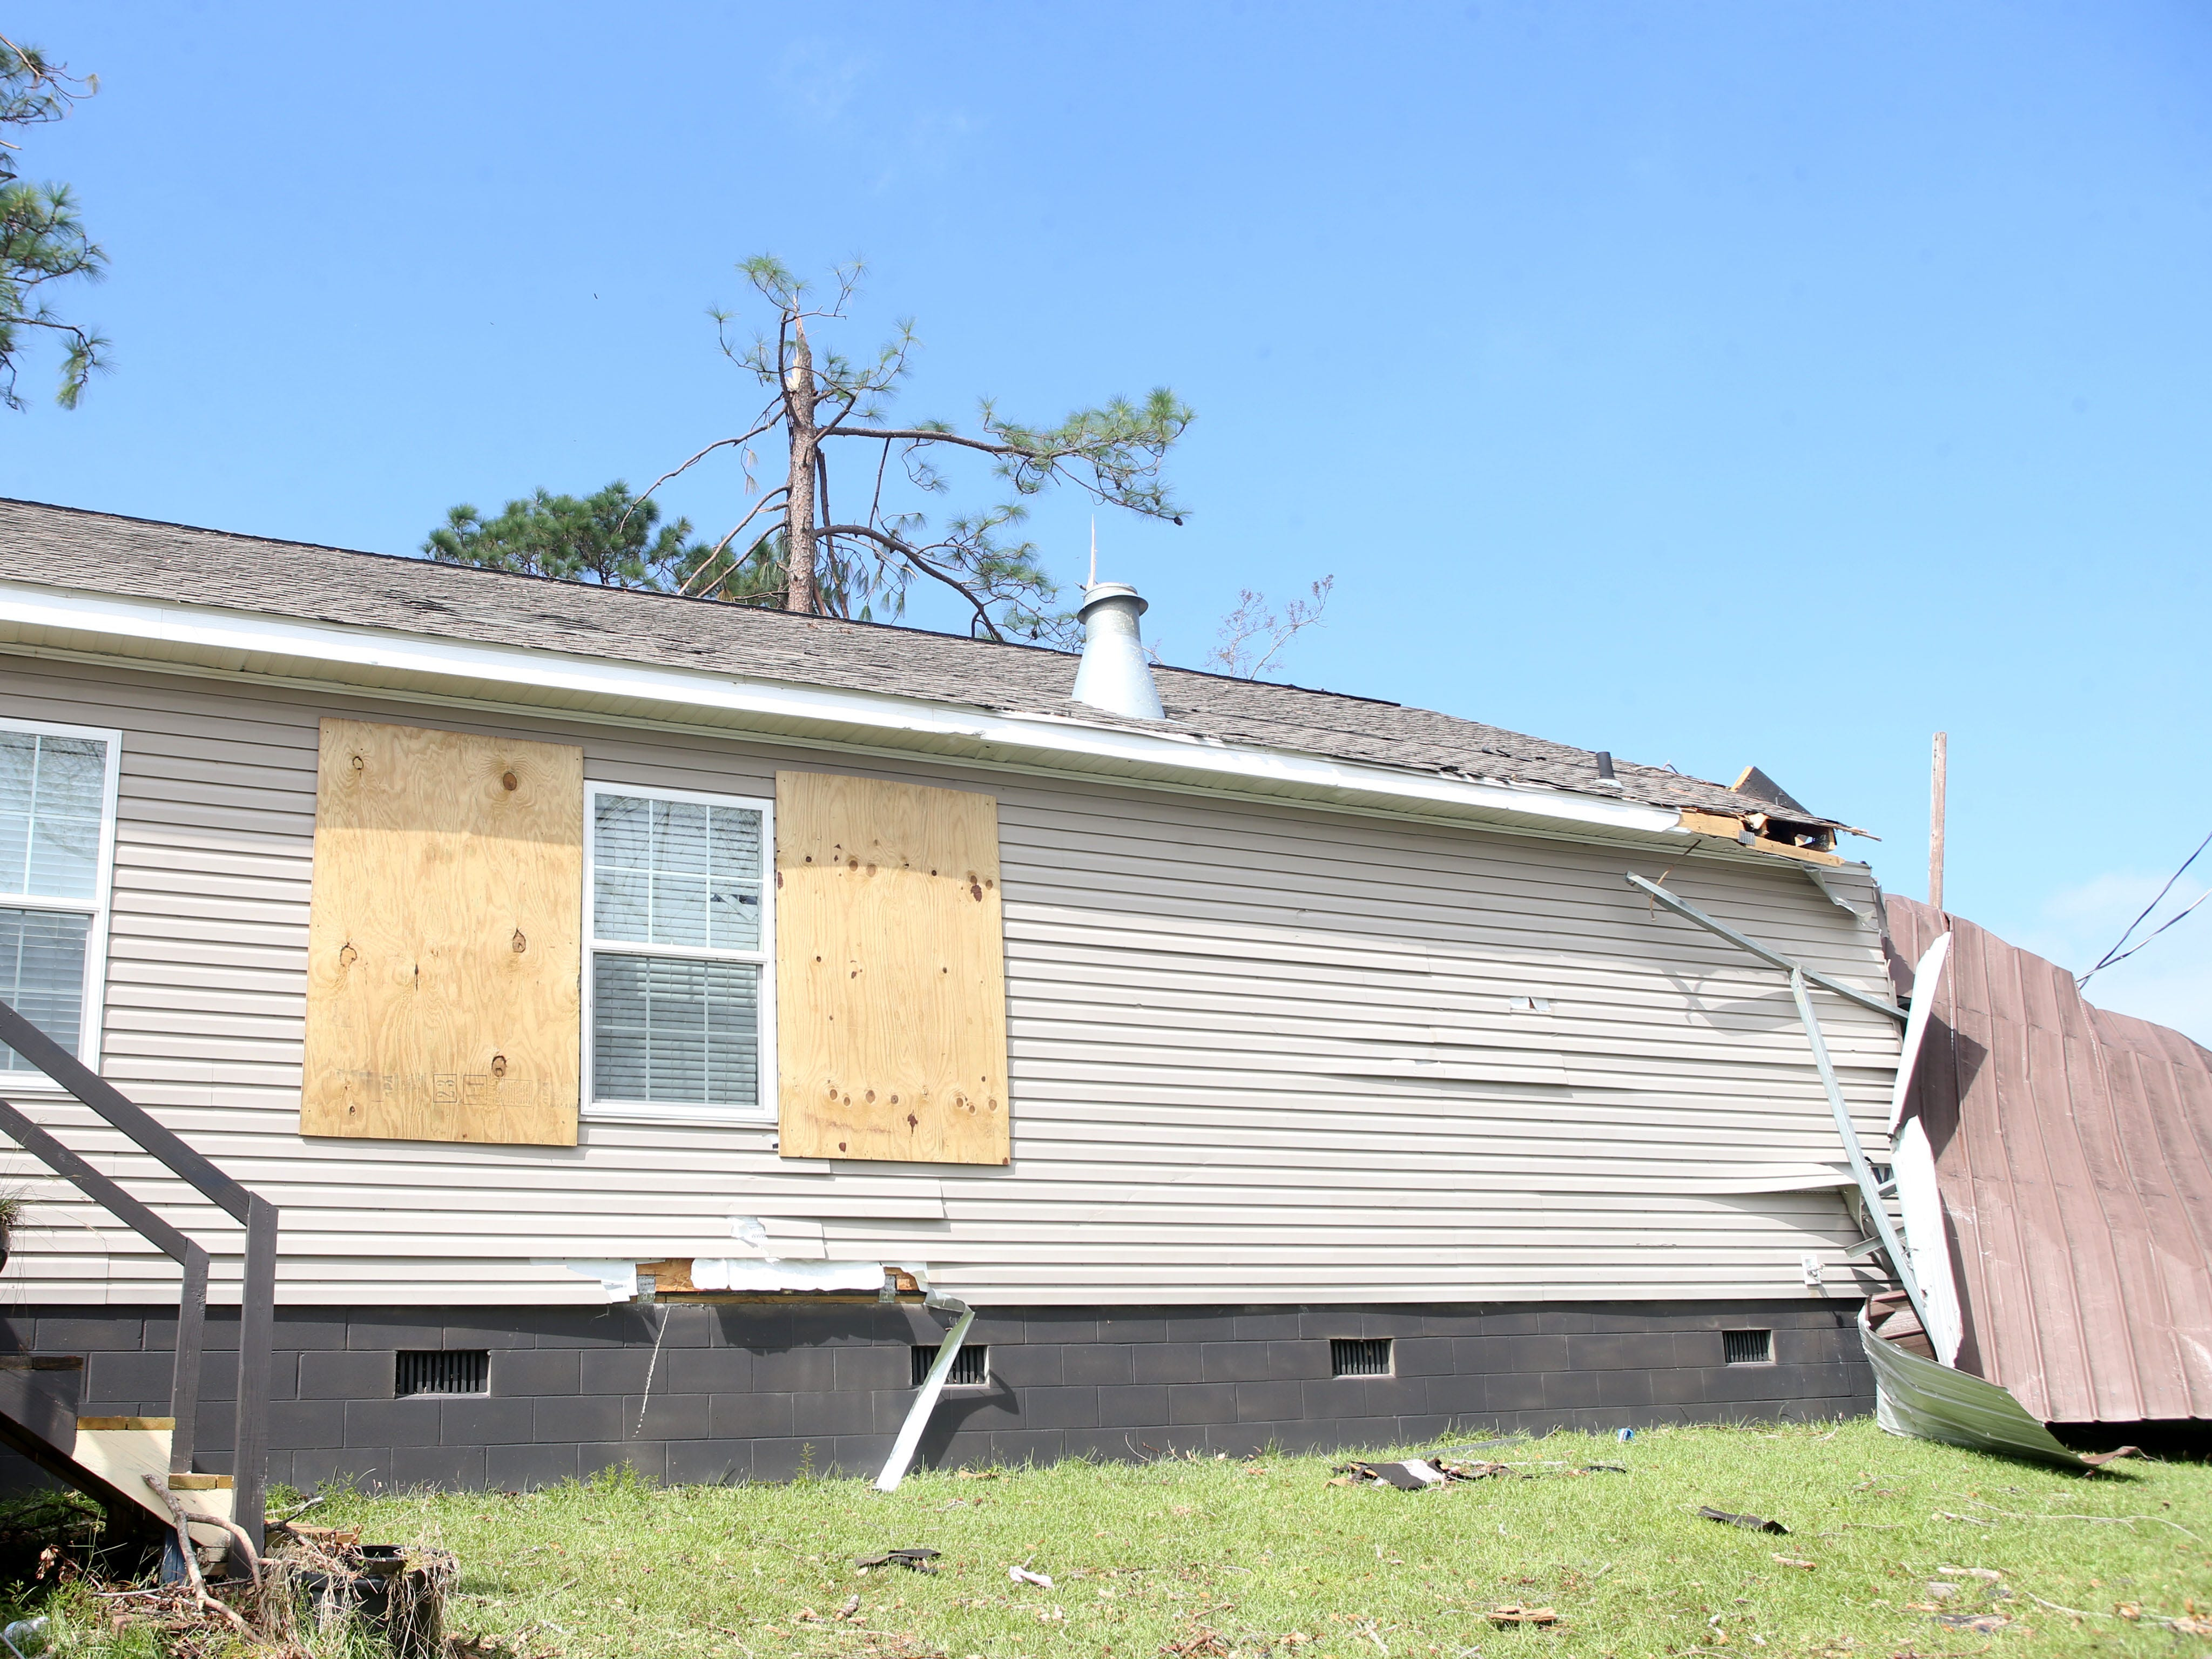 The back of Eugene and Elizabeth Radney's home, where Sarah Radney, an 11 year old girl who died during Hurricane Michael in Donalsonville, Ga., on Thursday, Oct. 18, 2018.